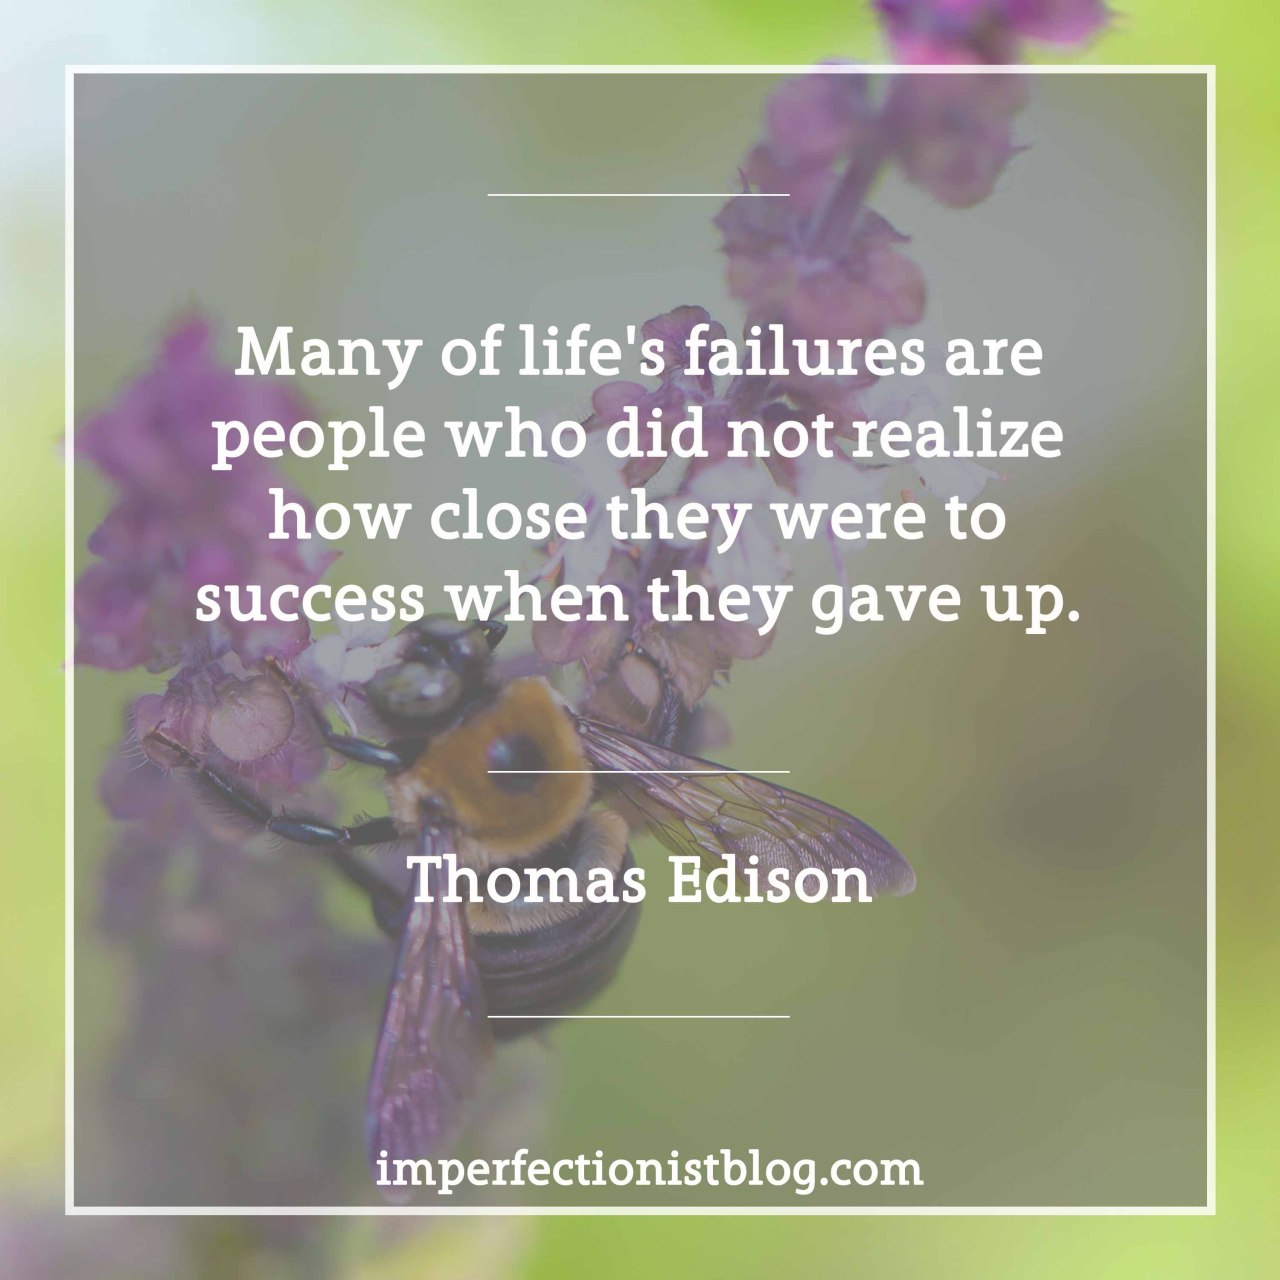 "#107 - ""Many of life's failures are people who did not realize how close they were to success when they gave up."" -Thomas Edison (b. 11 February 1847)"